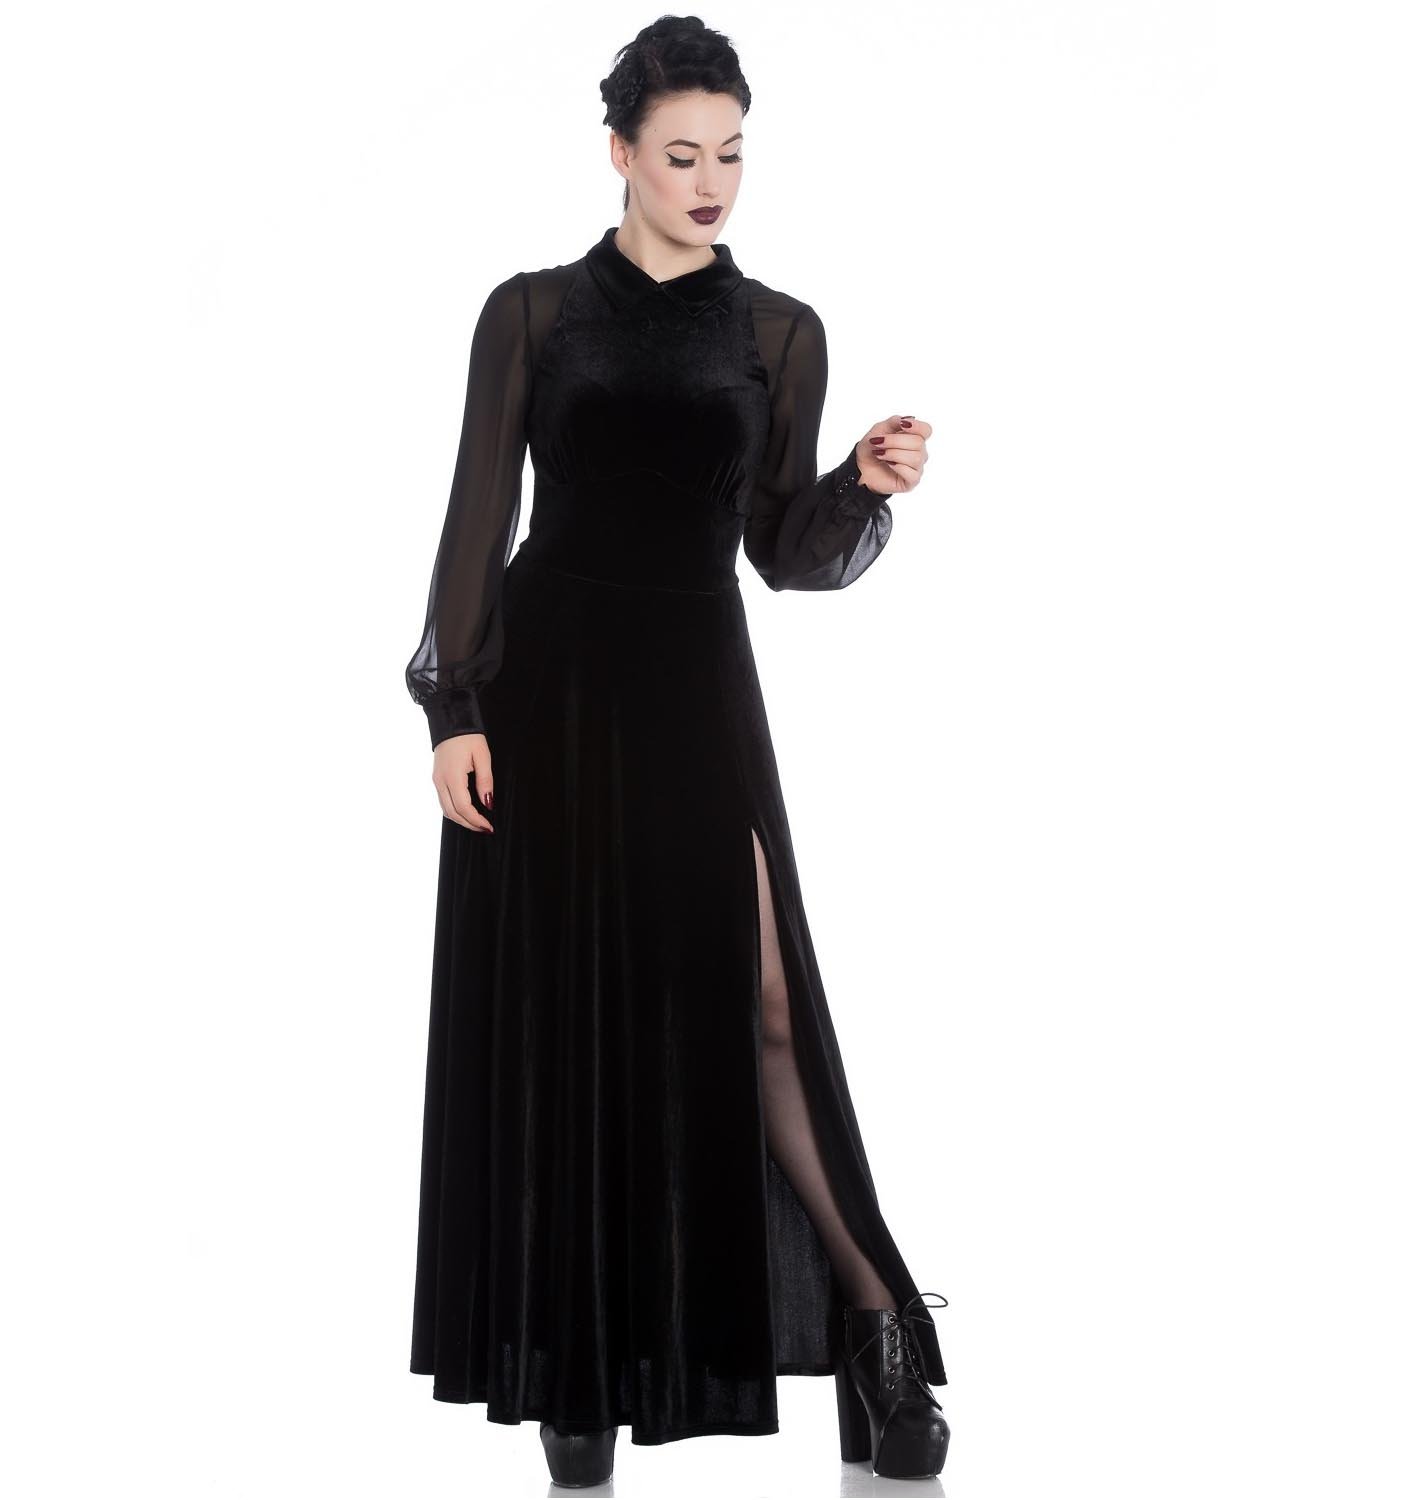 Hell-Bunny-Vampire-Goth-Elegant-Maxi-Dress-ESTELLE-Black-Velvet-Mesh-All-Sizes thumbnail 7